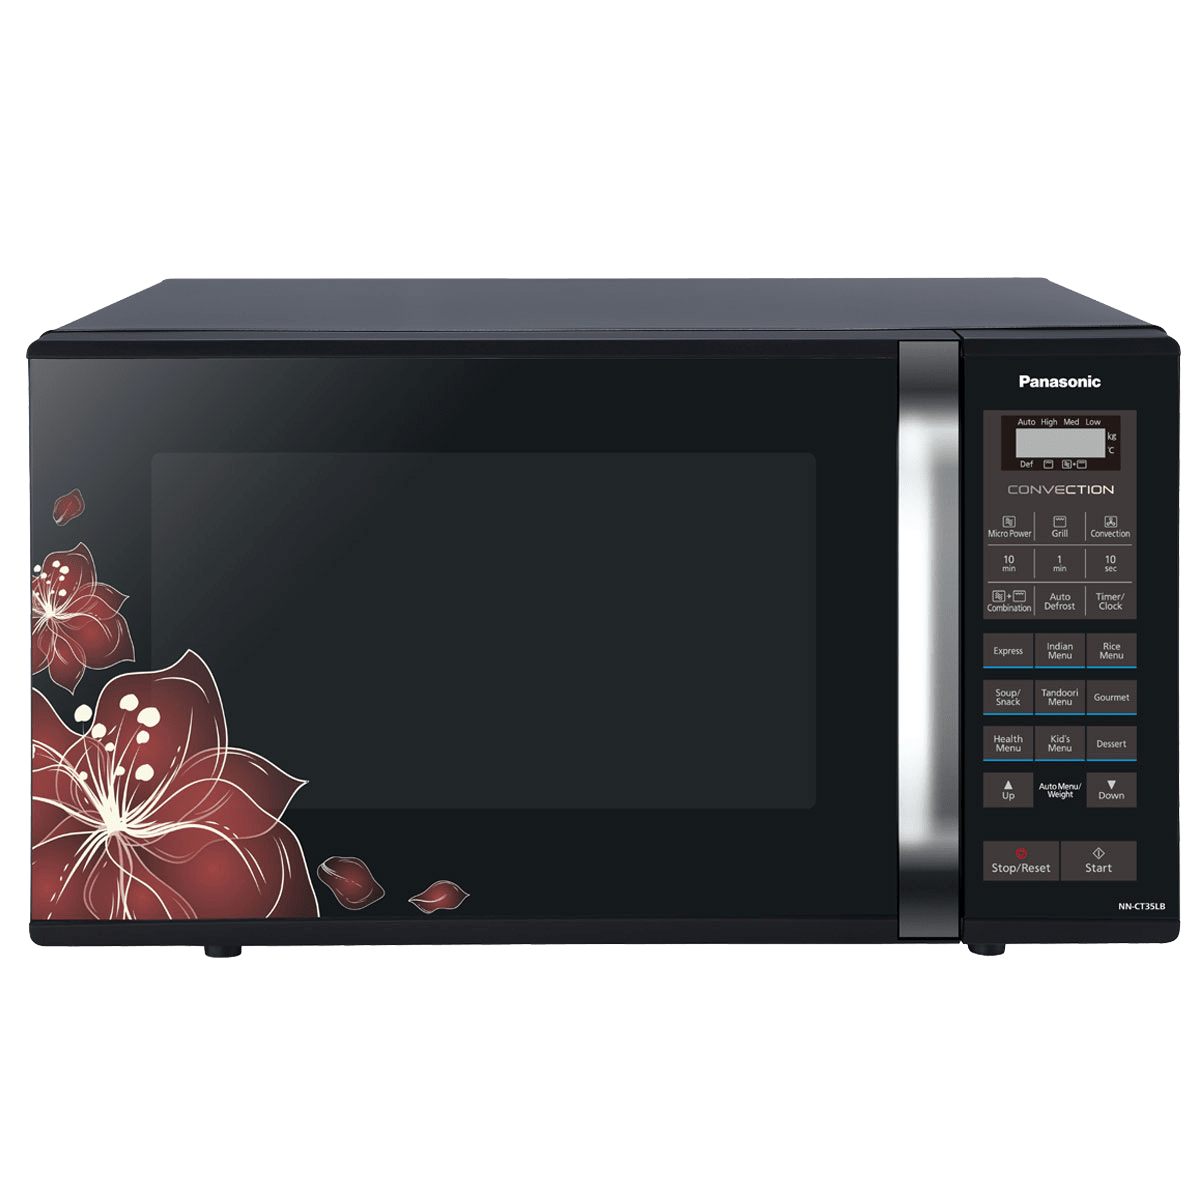 Panasonic 23 Litres Convection Microwave Oven (360° Heat Wrap, NN-CT35LBFDG, Black Floral)